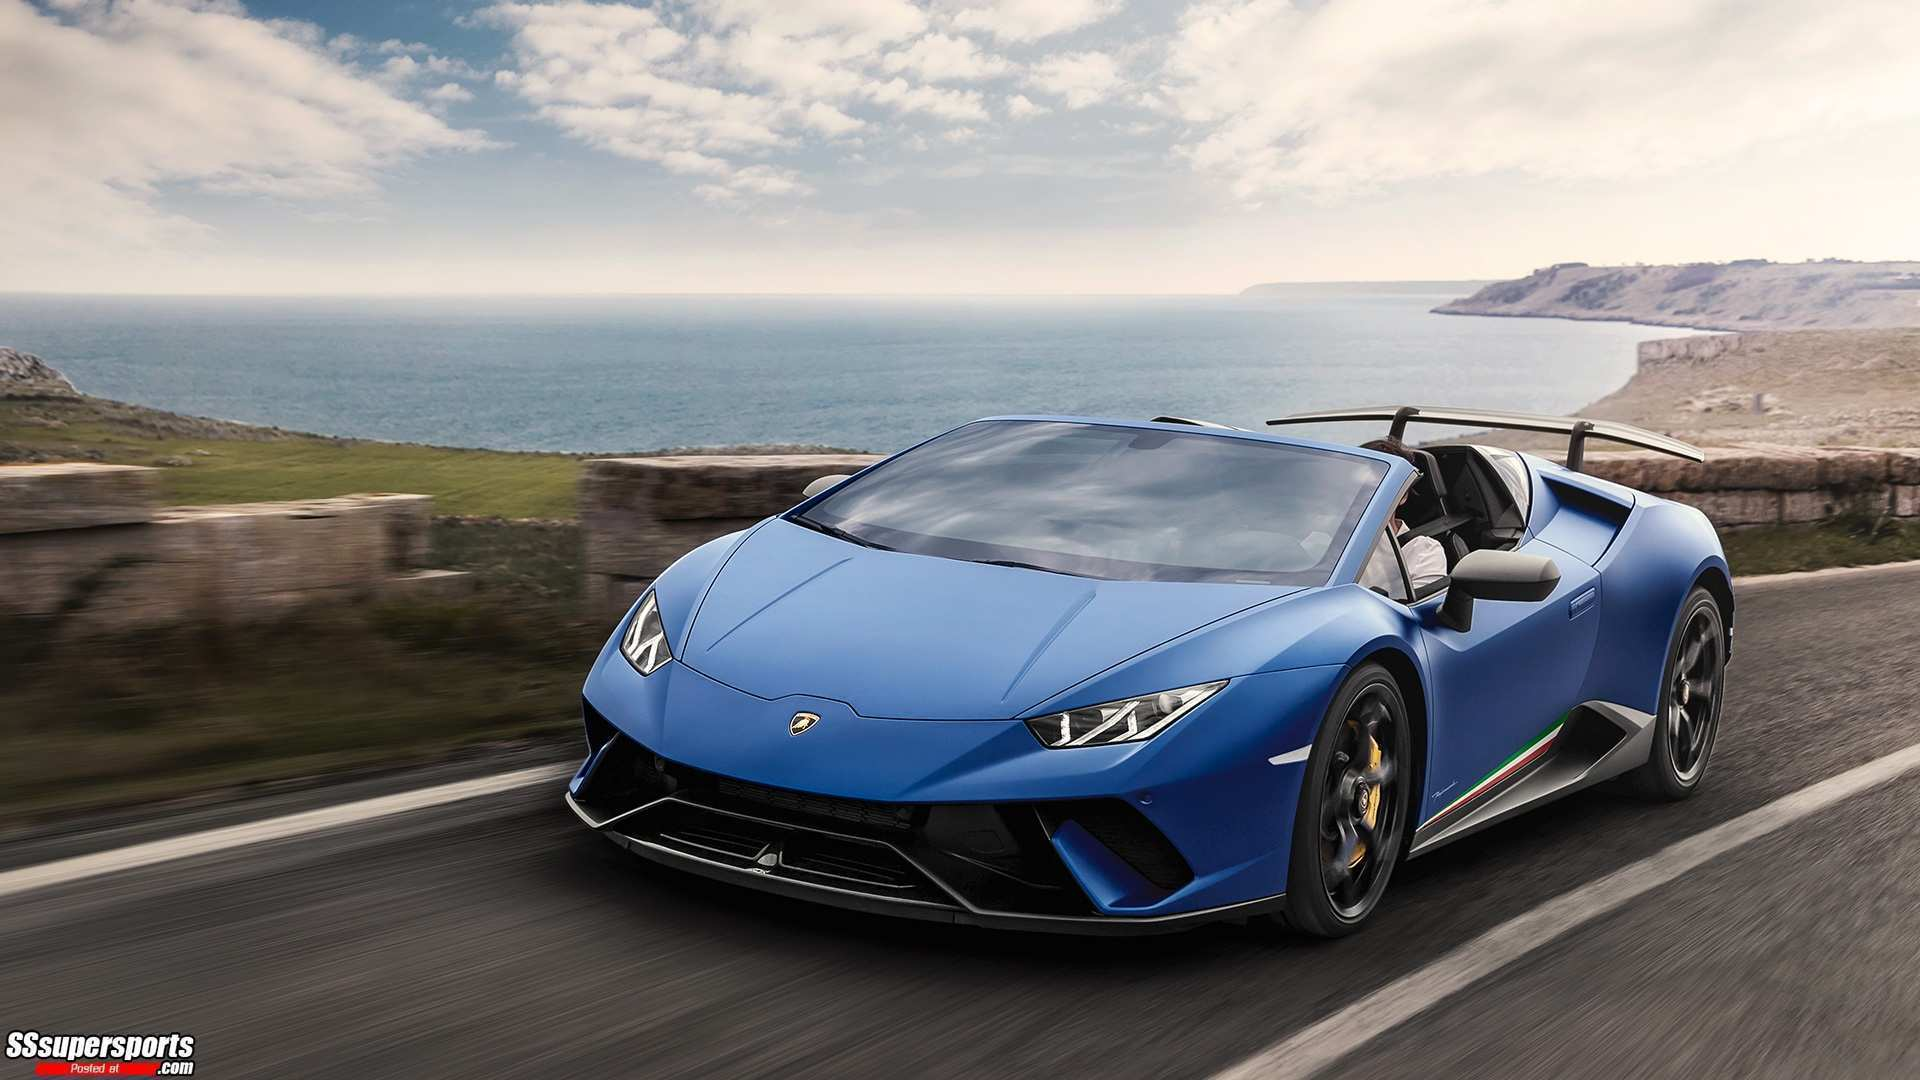 91 Great 2019 Lamborghini Huracan Performante Price by 2019 Lamborghini Huracan Performante